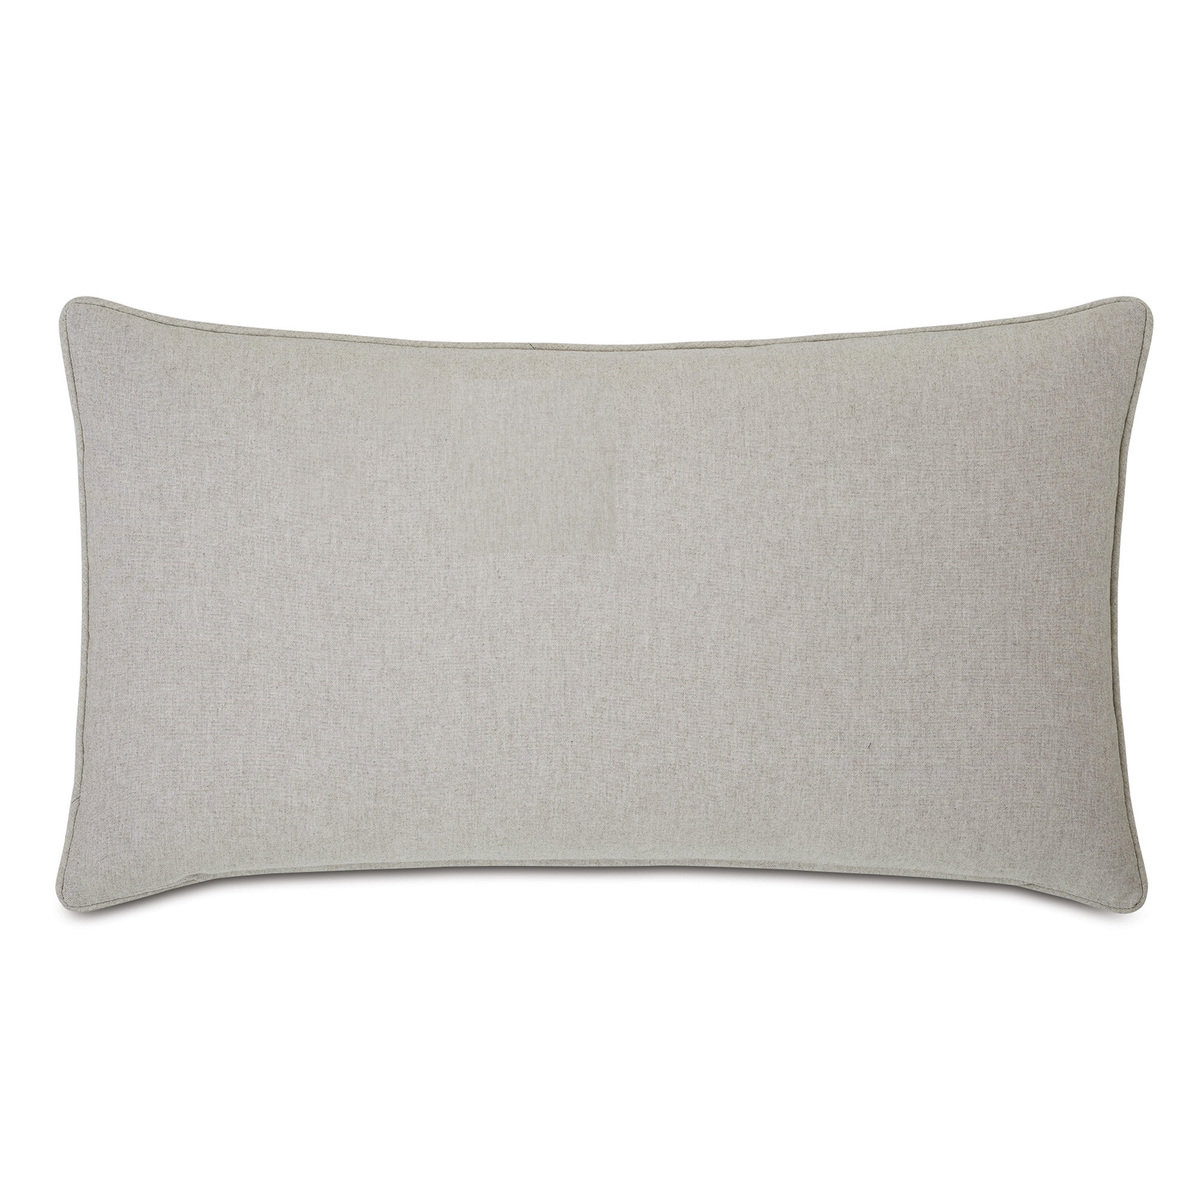 Alexa hampton eastern accent bedding balfour ksh 03 back 1200 xxx q85